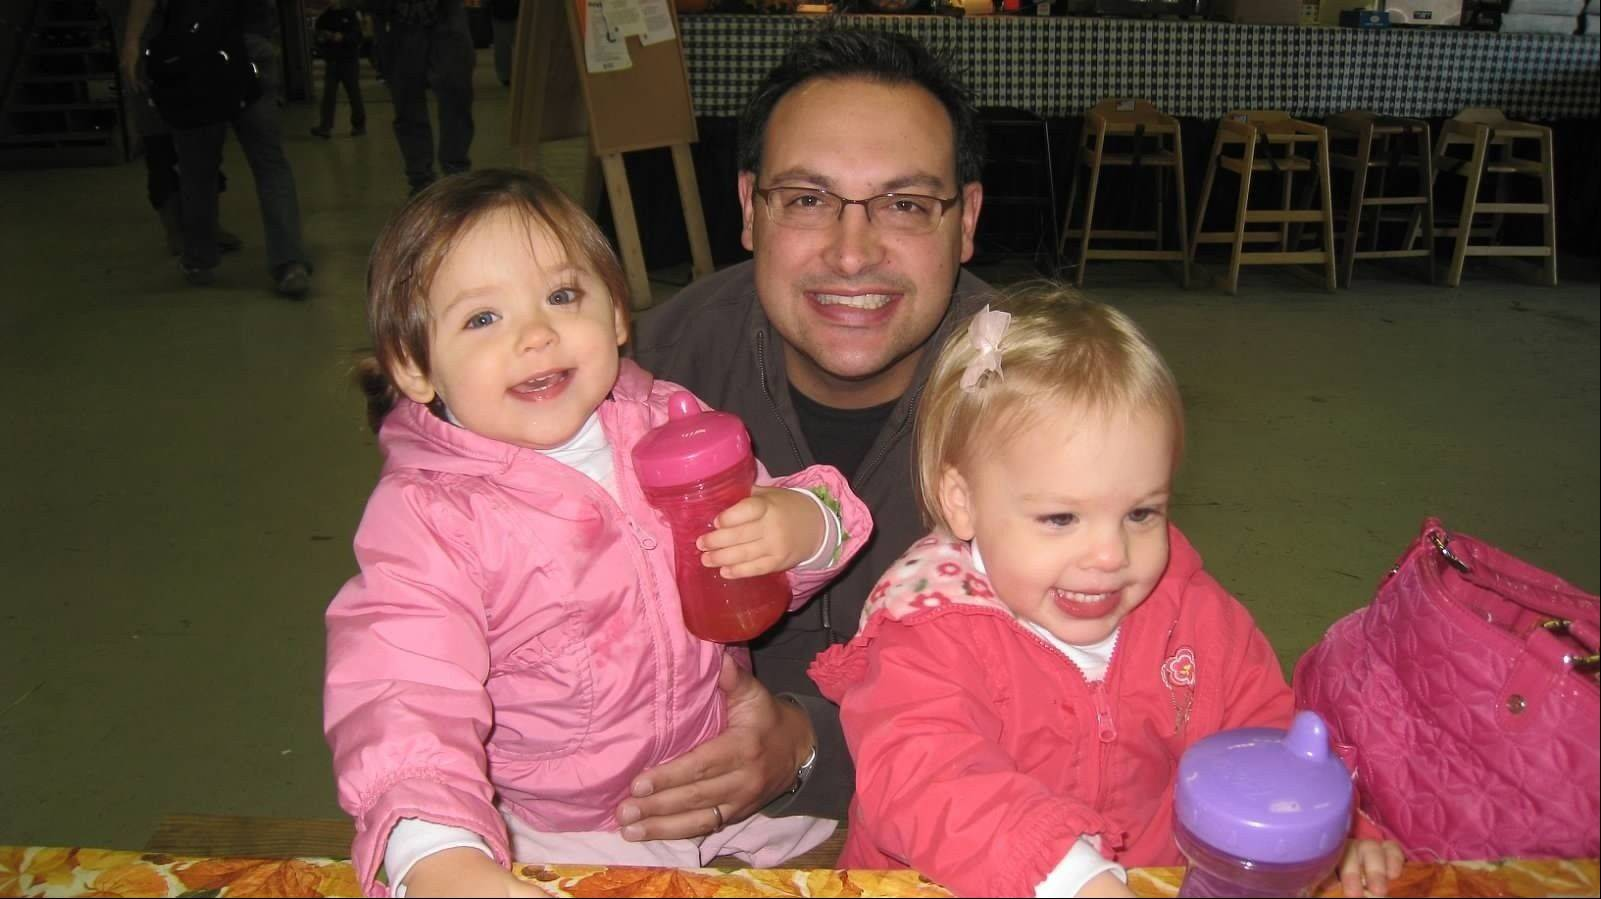 Josh Pierce with twin daughters Chloe, left, and Maddie. Josh was diagnosed two years ago with frontotemporal degeneration, a rare form of early onset dementia that can strike people as young as 20.